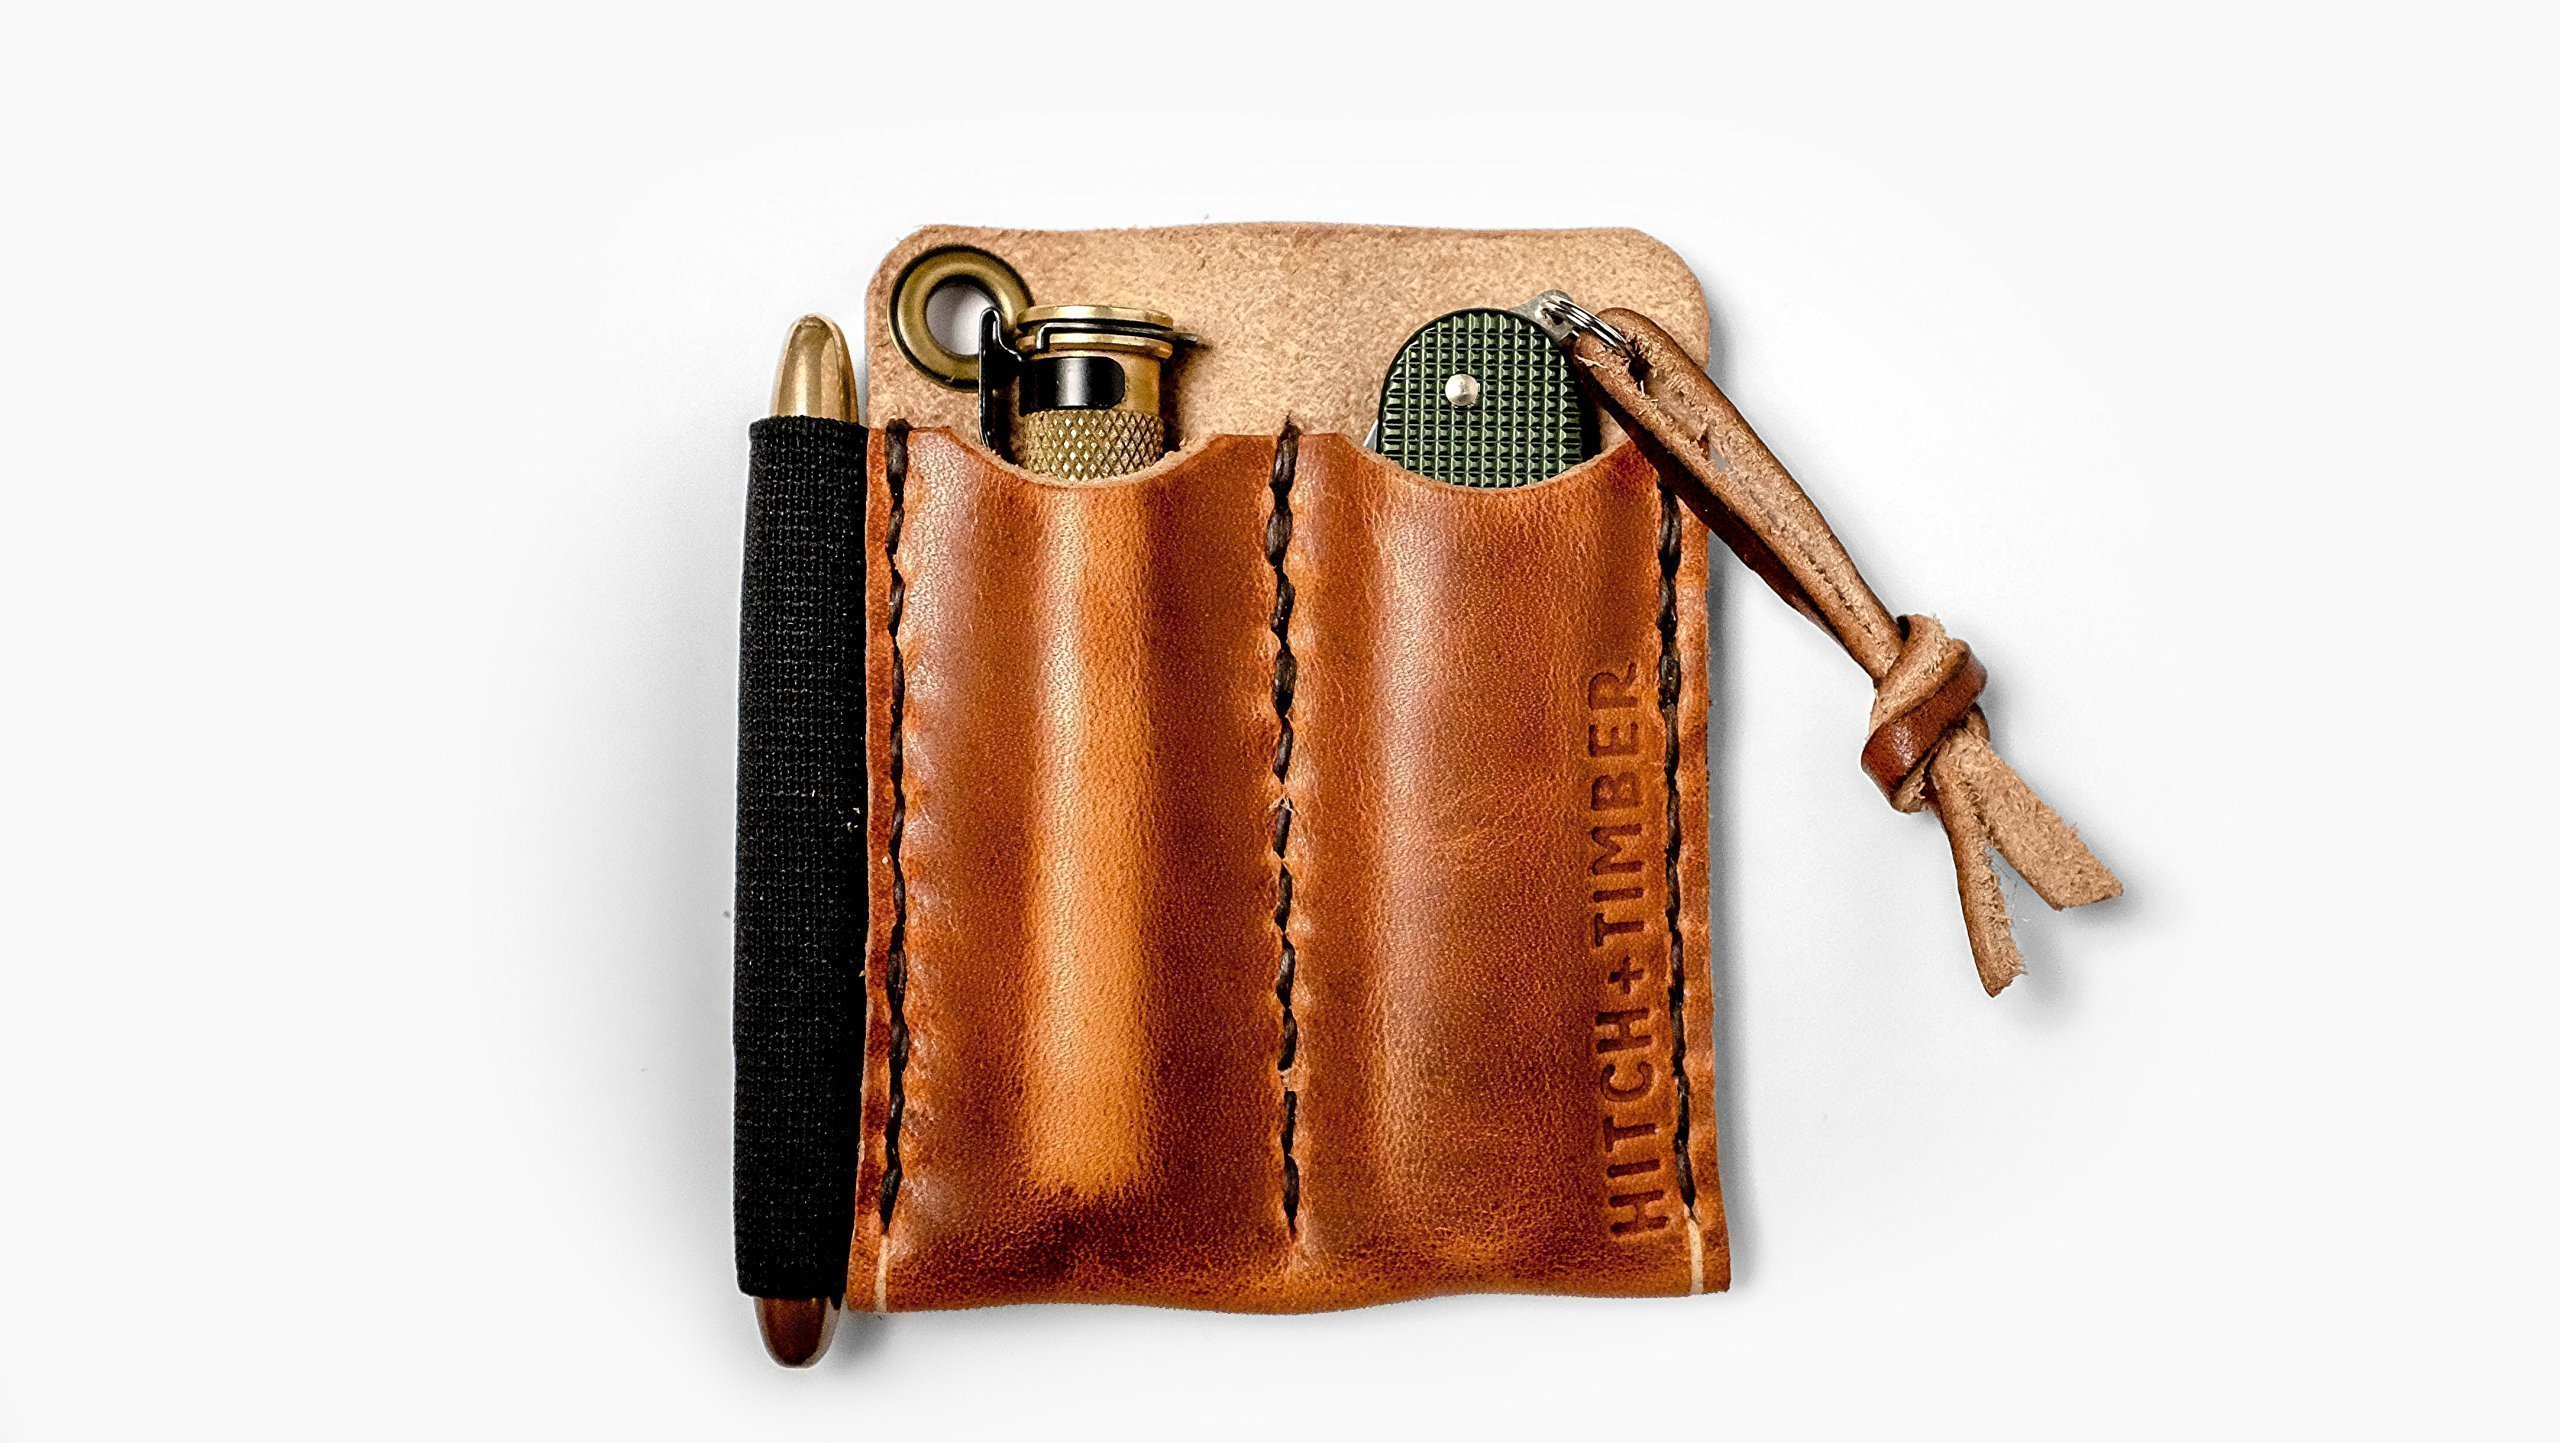 The Pocket Runt 2.0 - Double Leather EDC Slip for Everyday Carry by Hitch & Timber